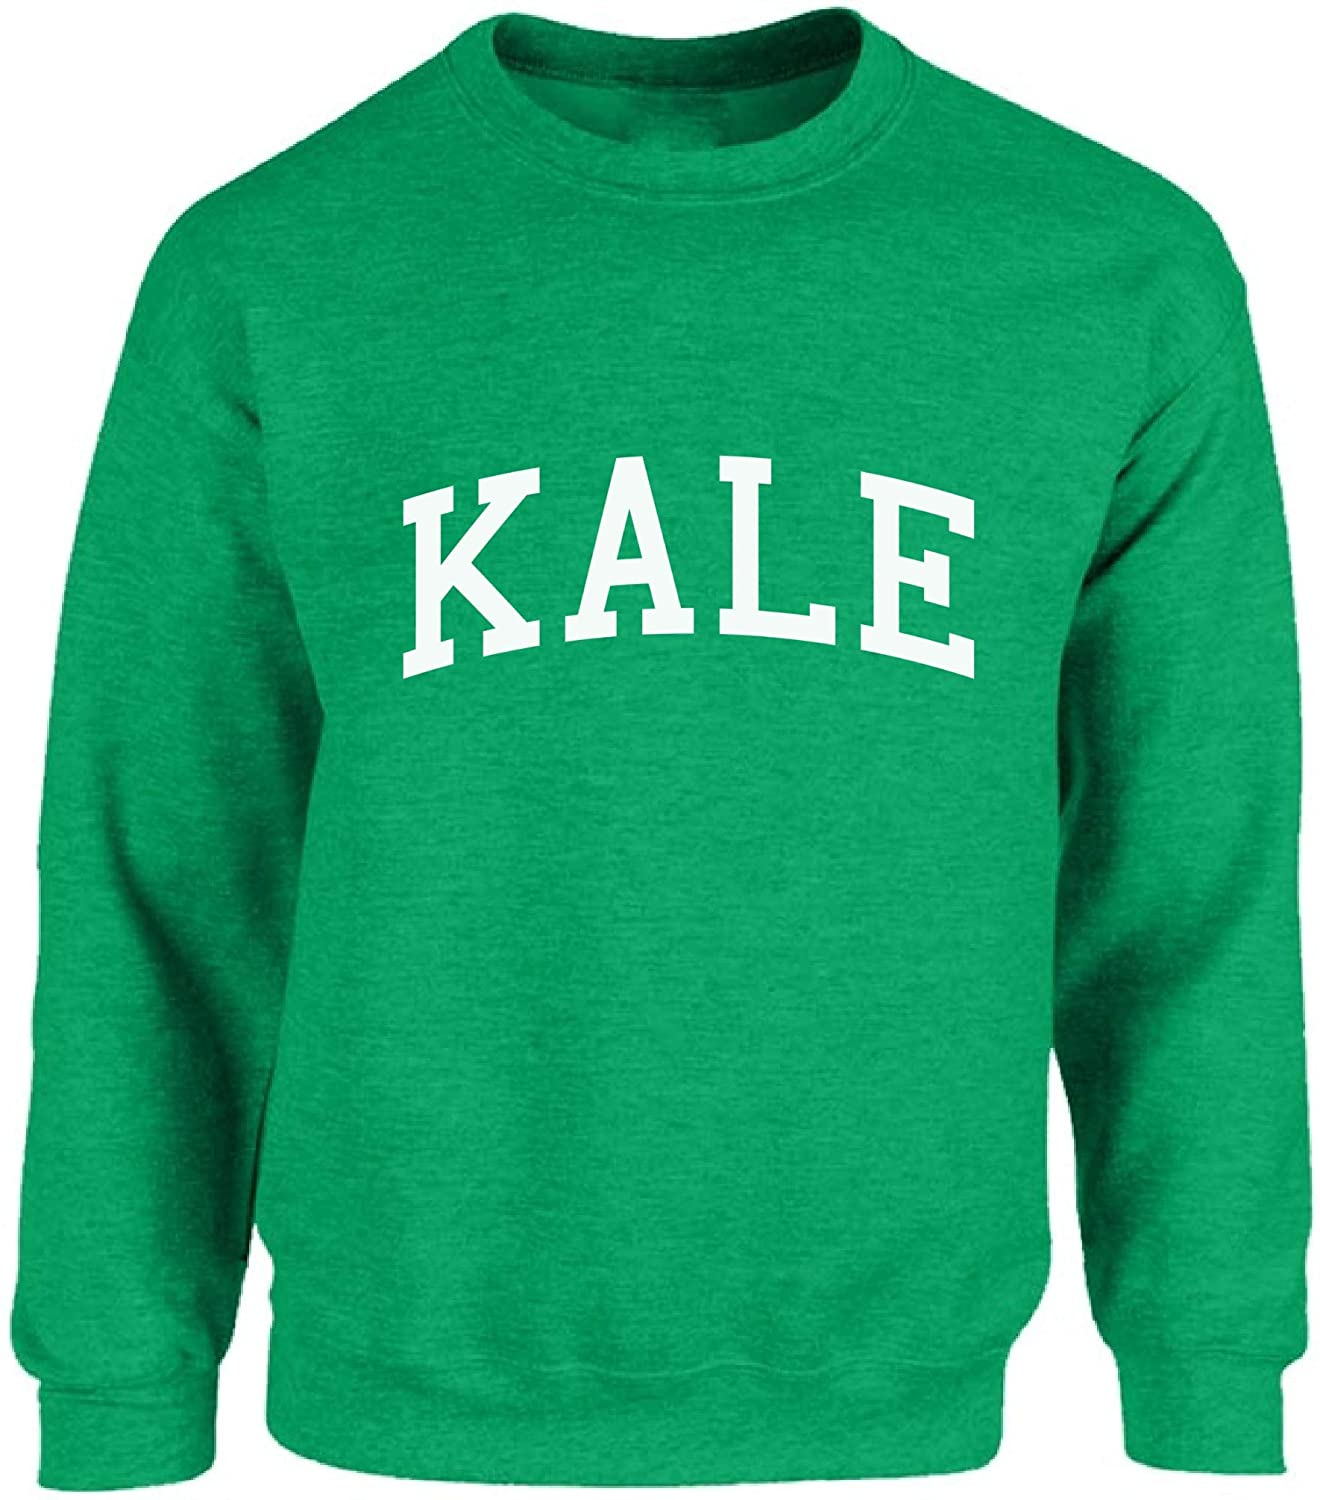 Vizor Kale Vegan Crewneck Top Kale Sweatshirts Vegetarian Lifestyle Kale Clothes